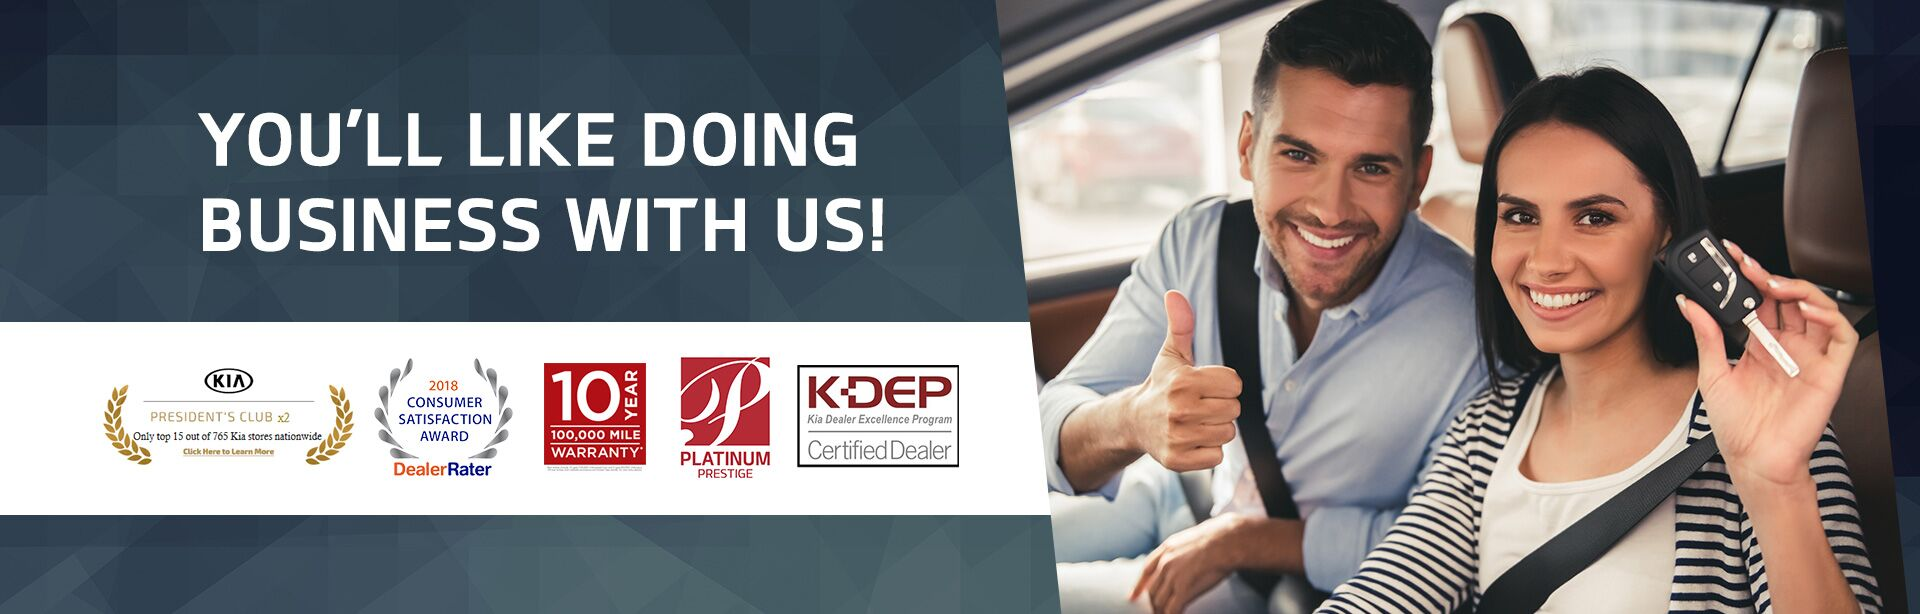 You'll Like Doing Business With Us!